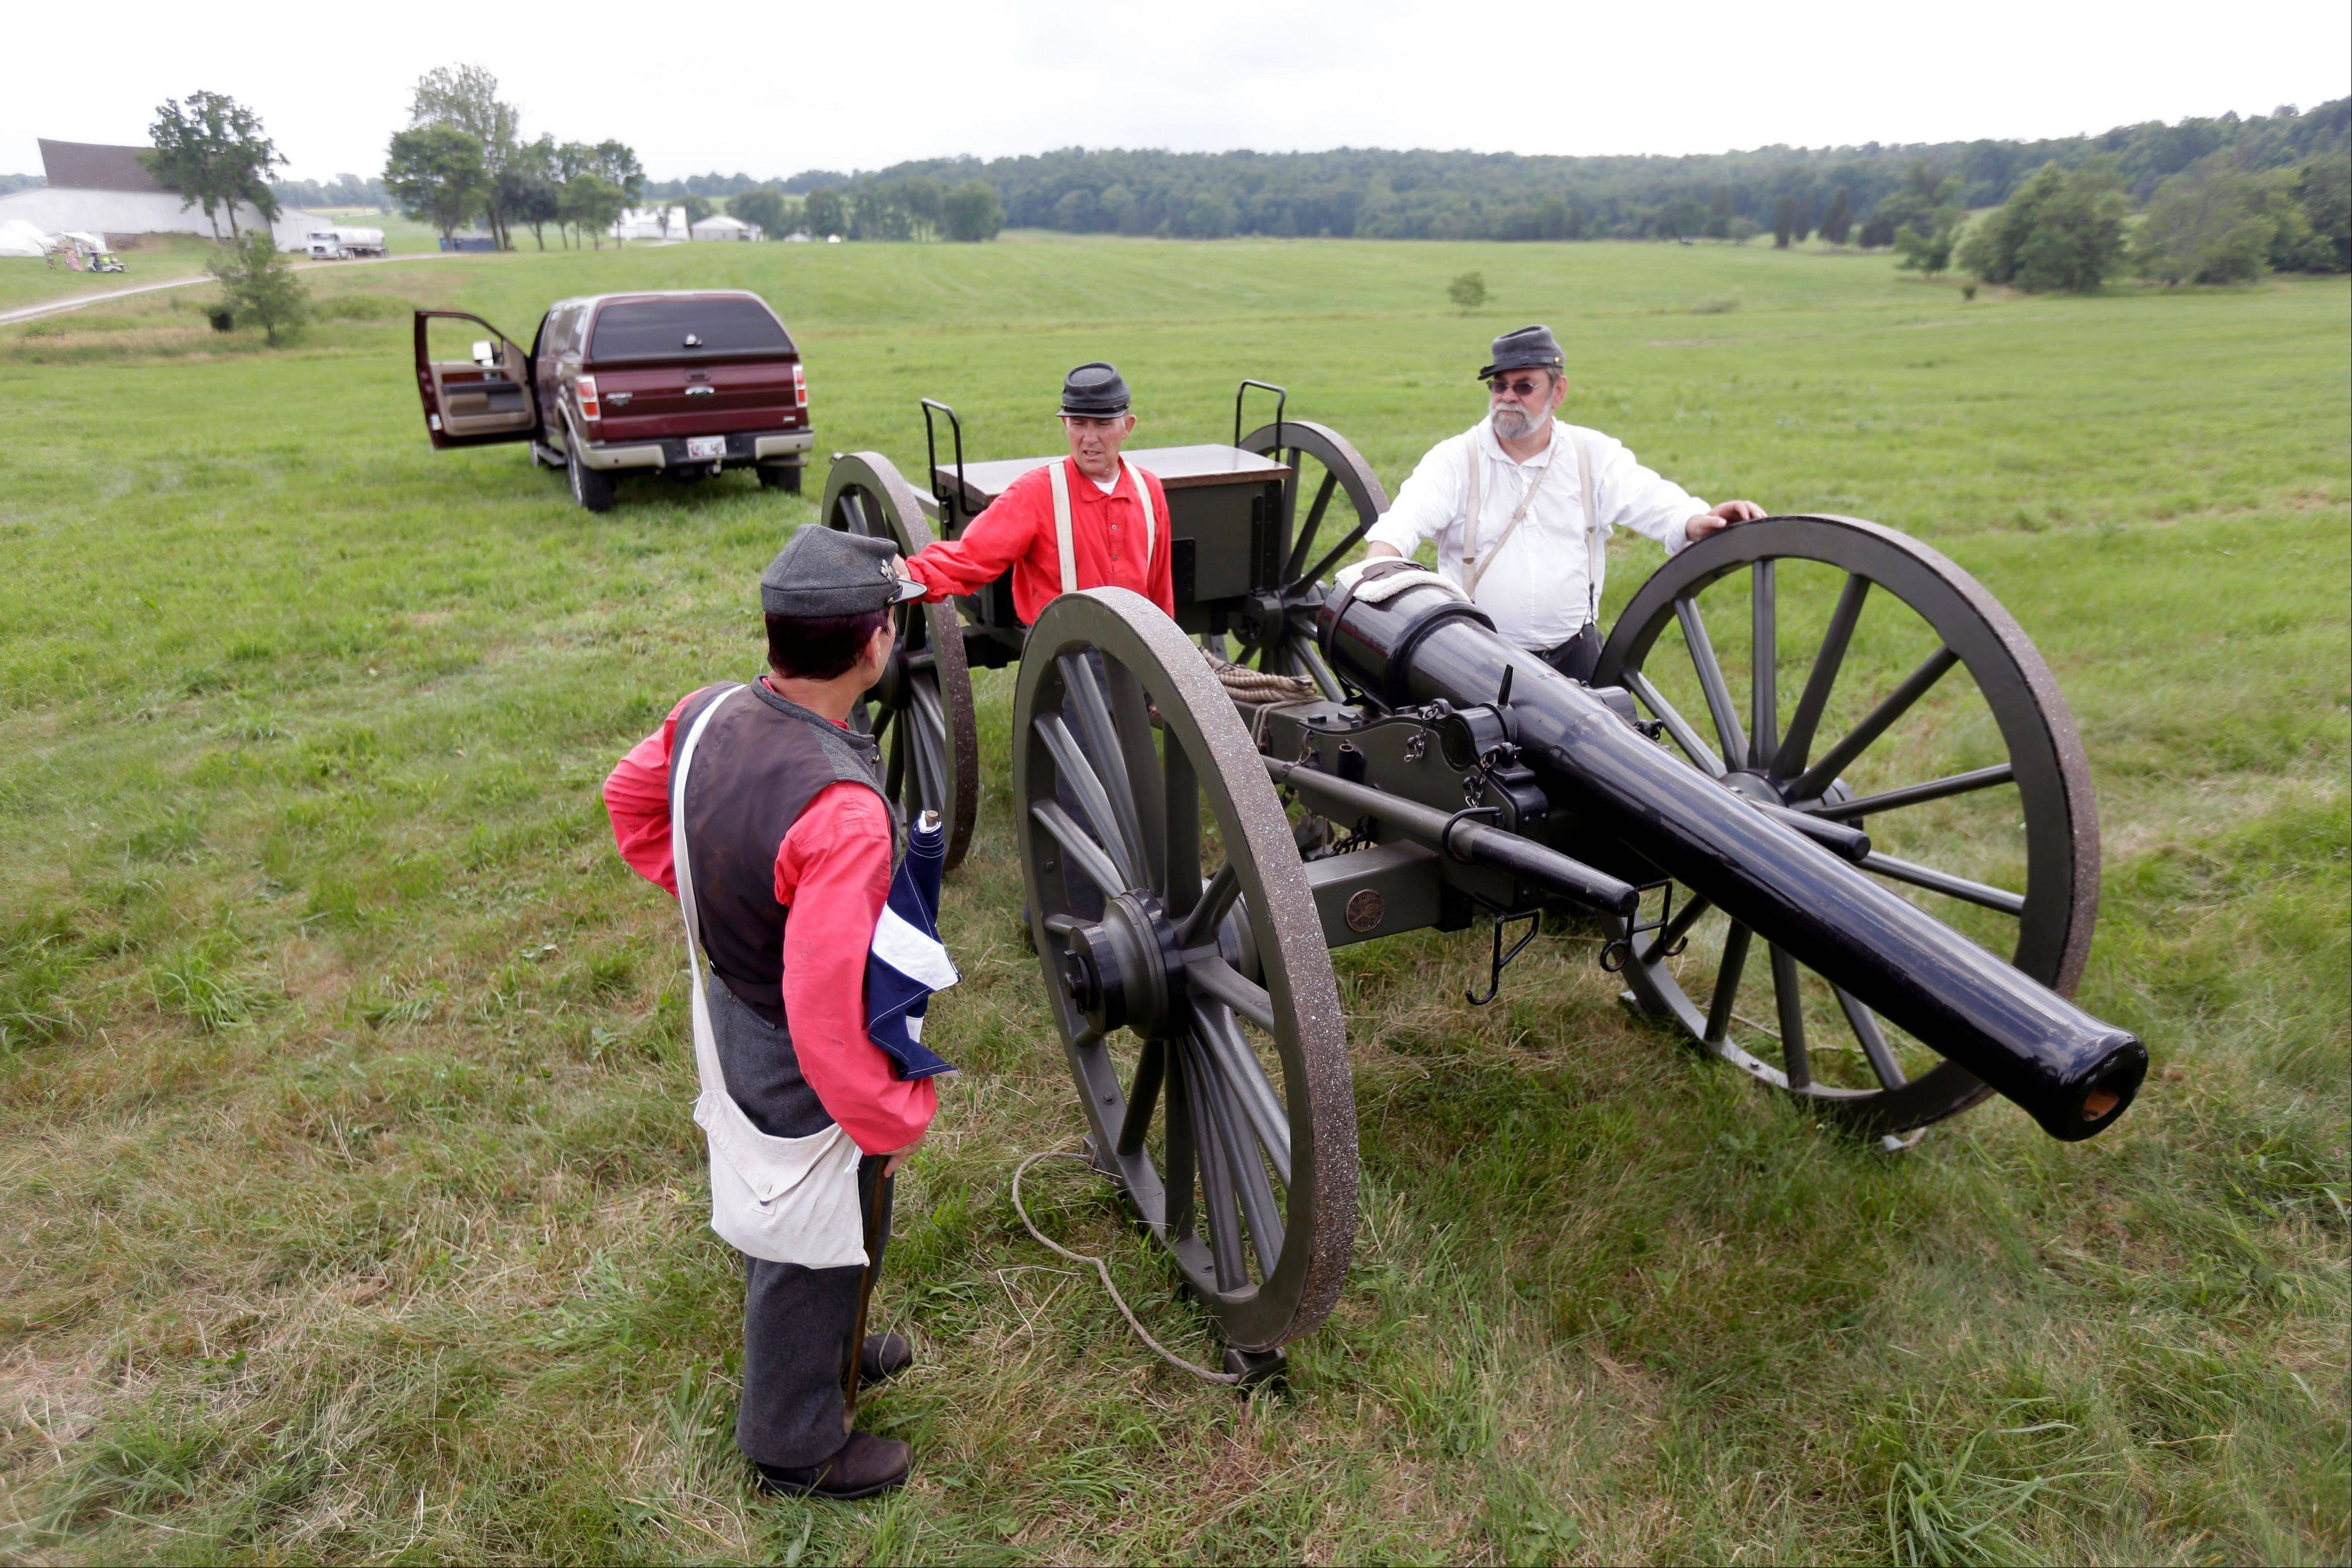 Members of the 4th Maryland Light Artillery unload their weapon in the Artillery park during ongoing activities commemorating the 150th anniversary of the Battle of Gettysburg on Thursday.